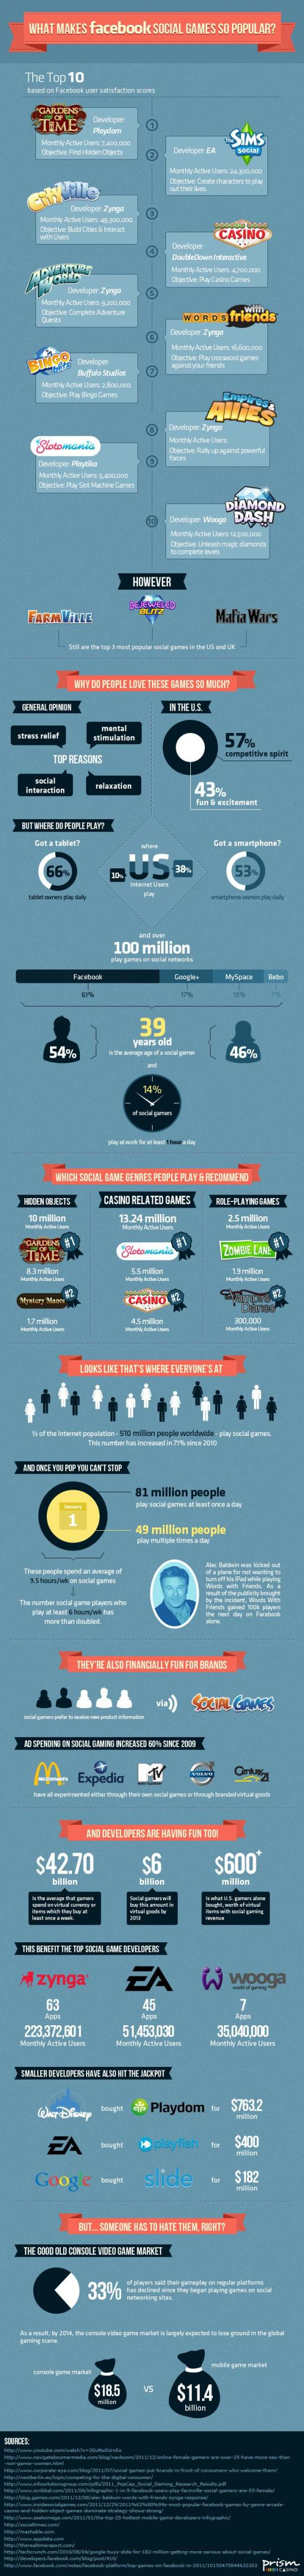 Infographic: Social Games on Facebook and <a href=